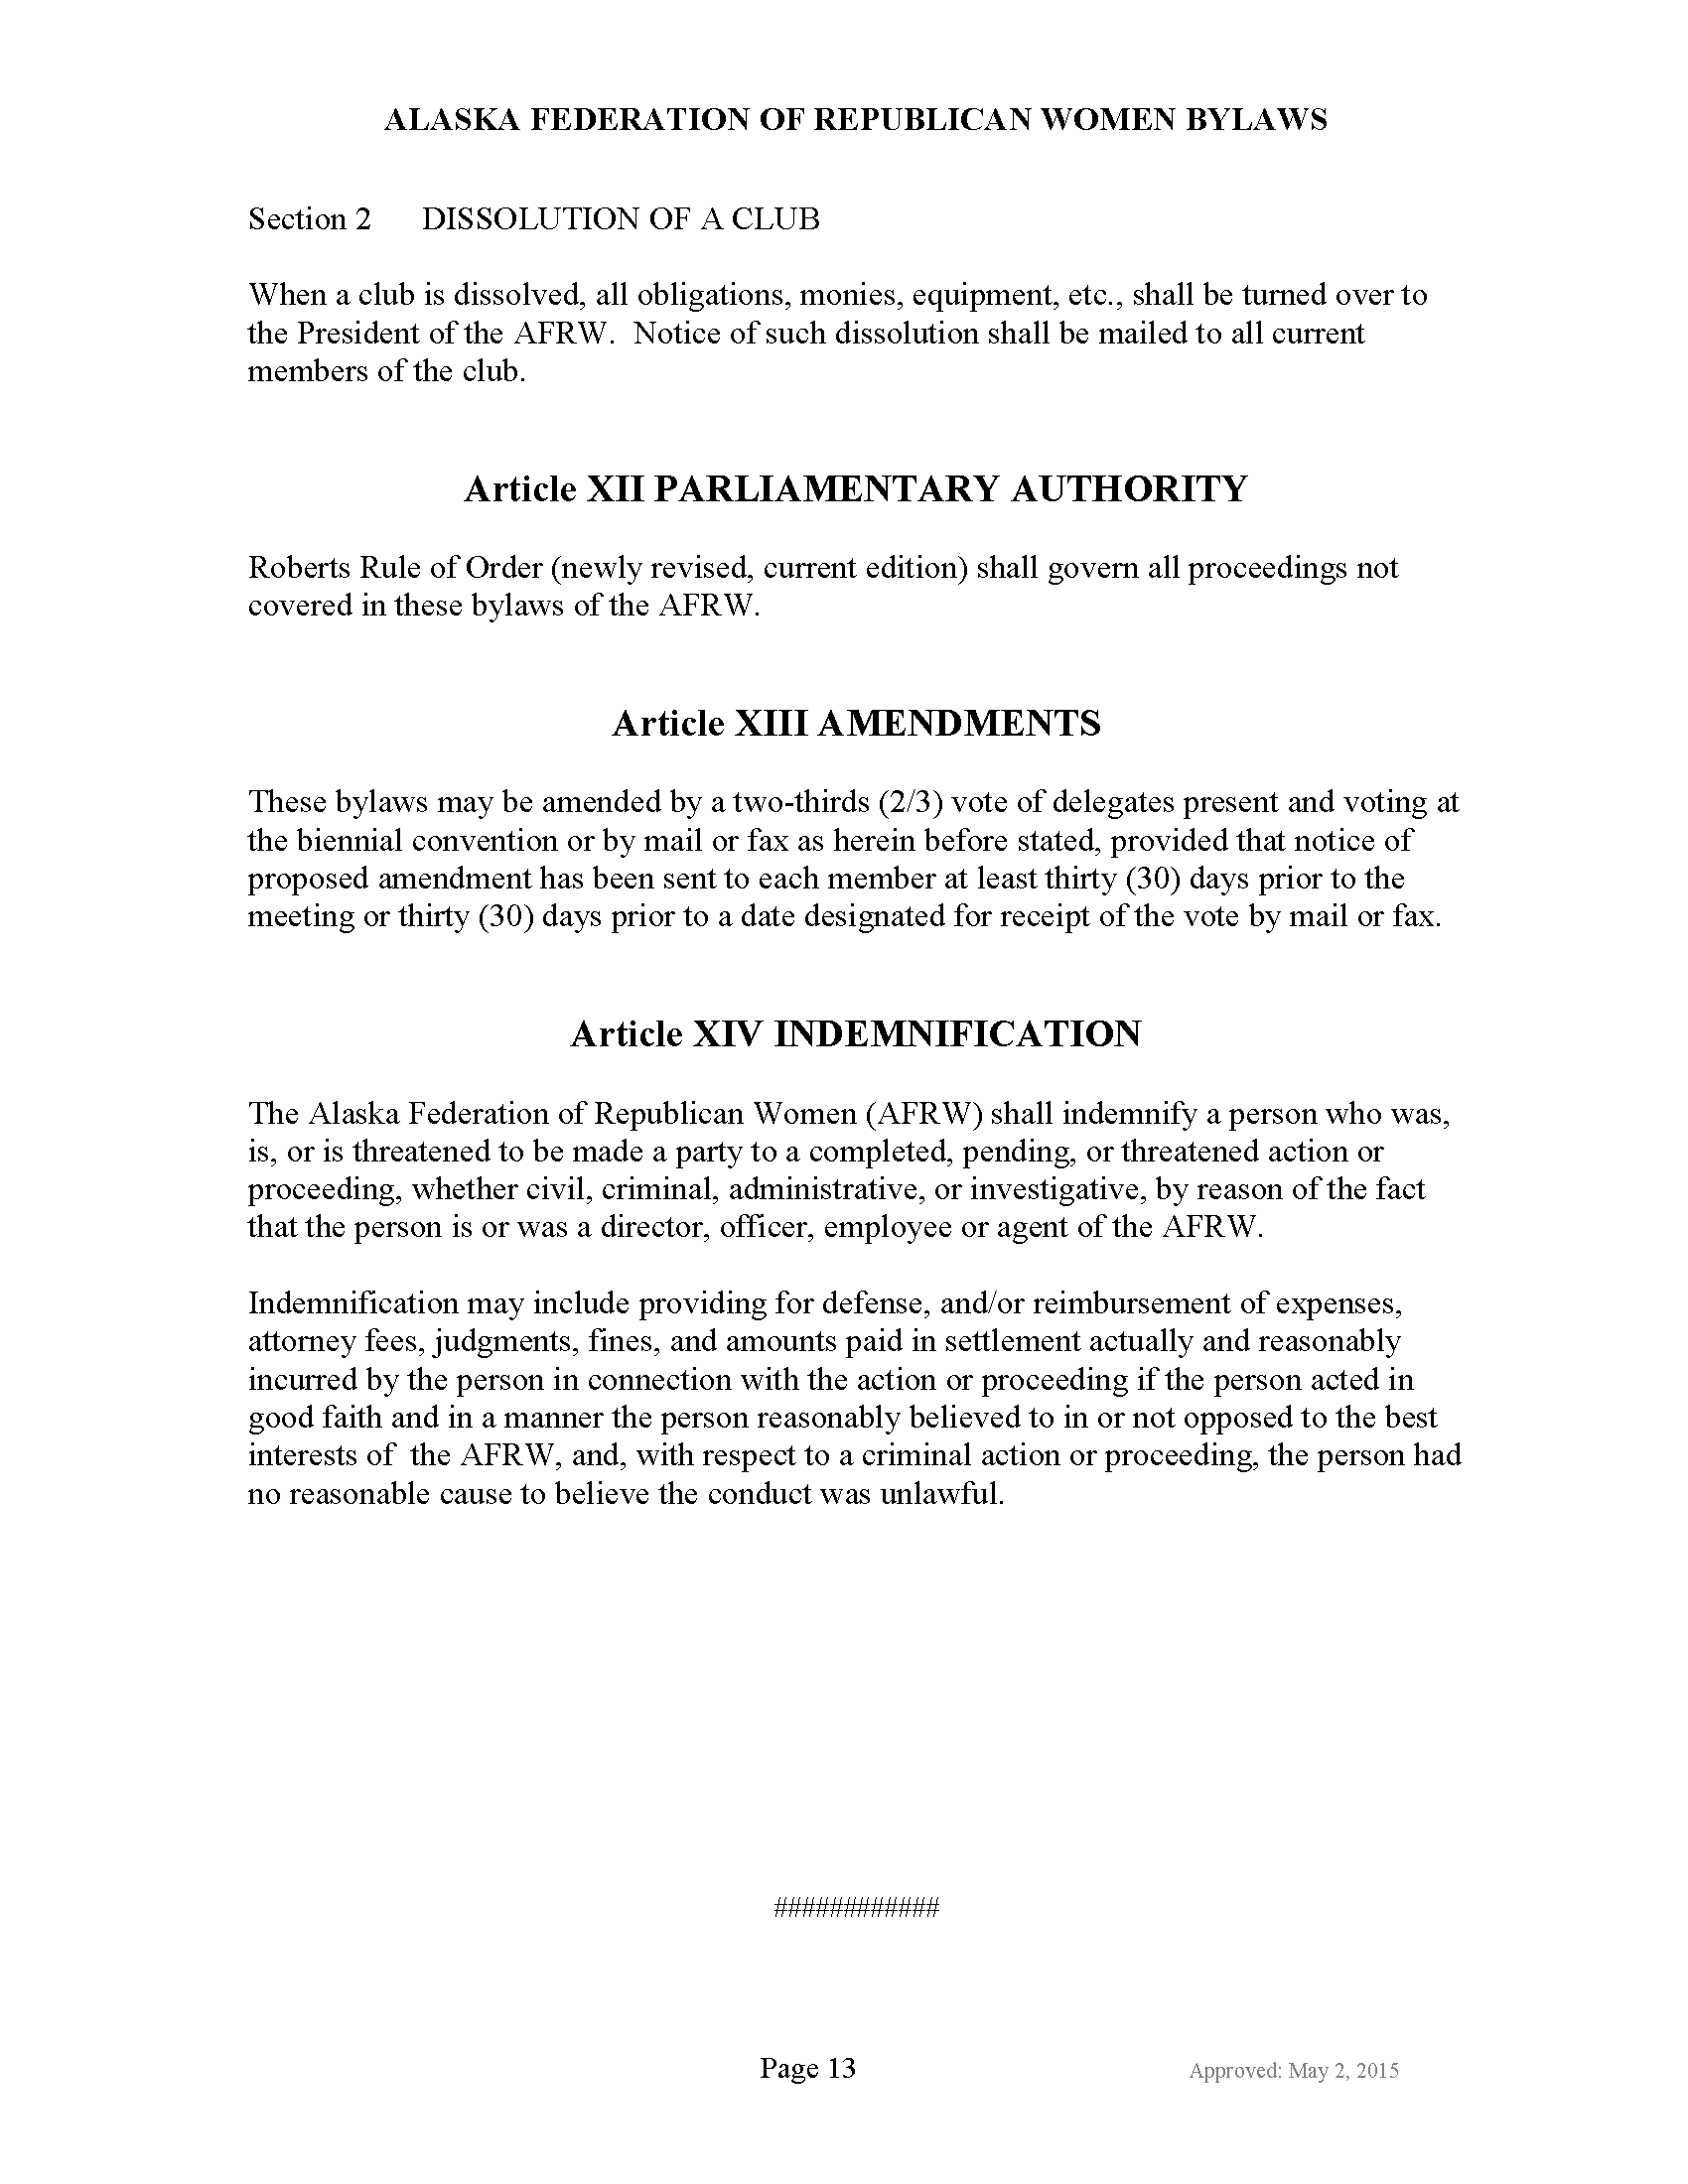 AFRW_Bylaws_ARWC_Approved_May_2__2015__(1)_Page_13.png